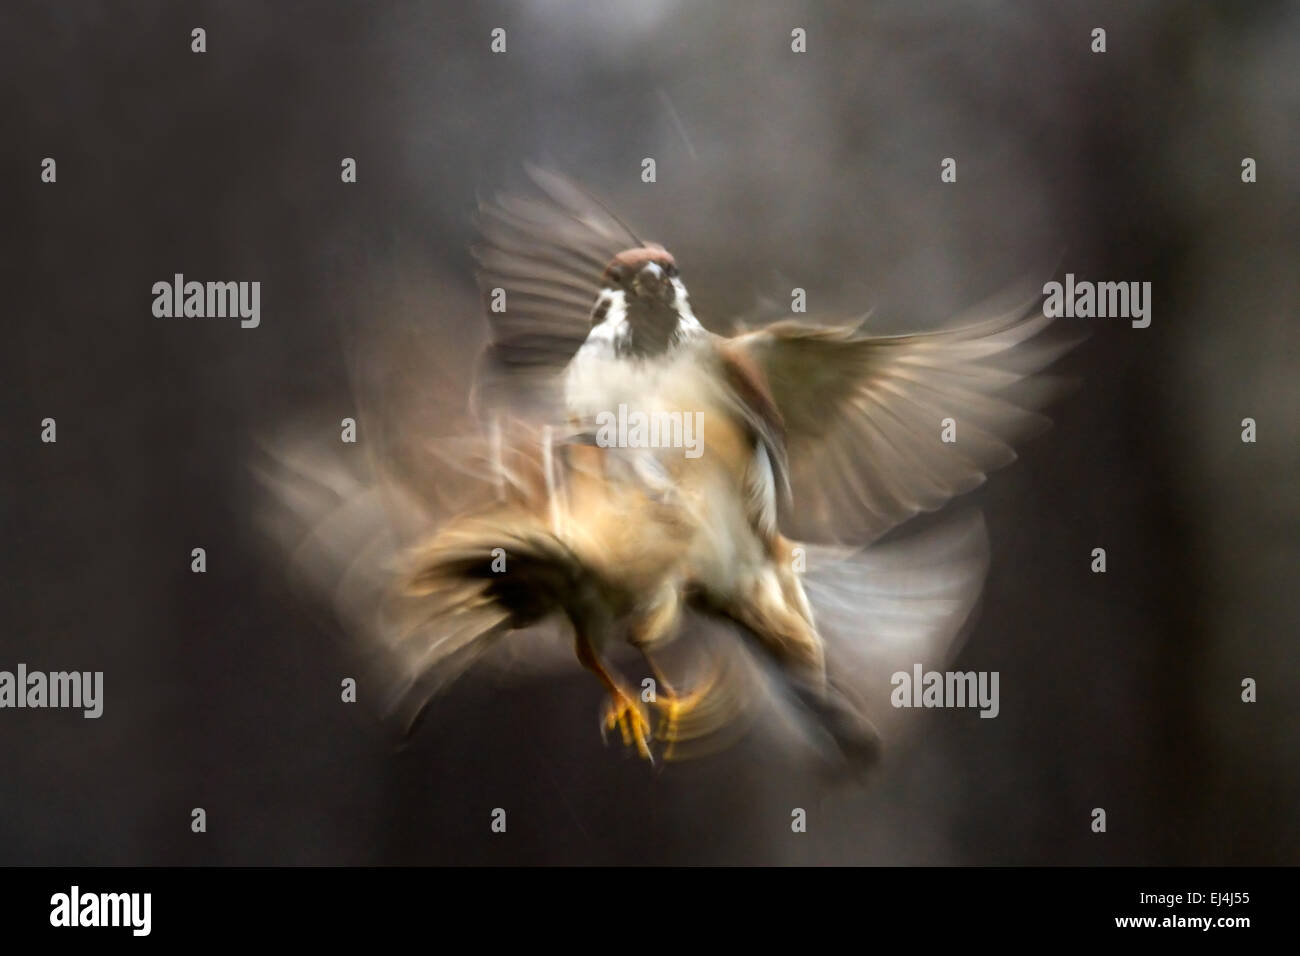 Flying blurred bird - Stock Image